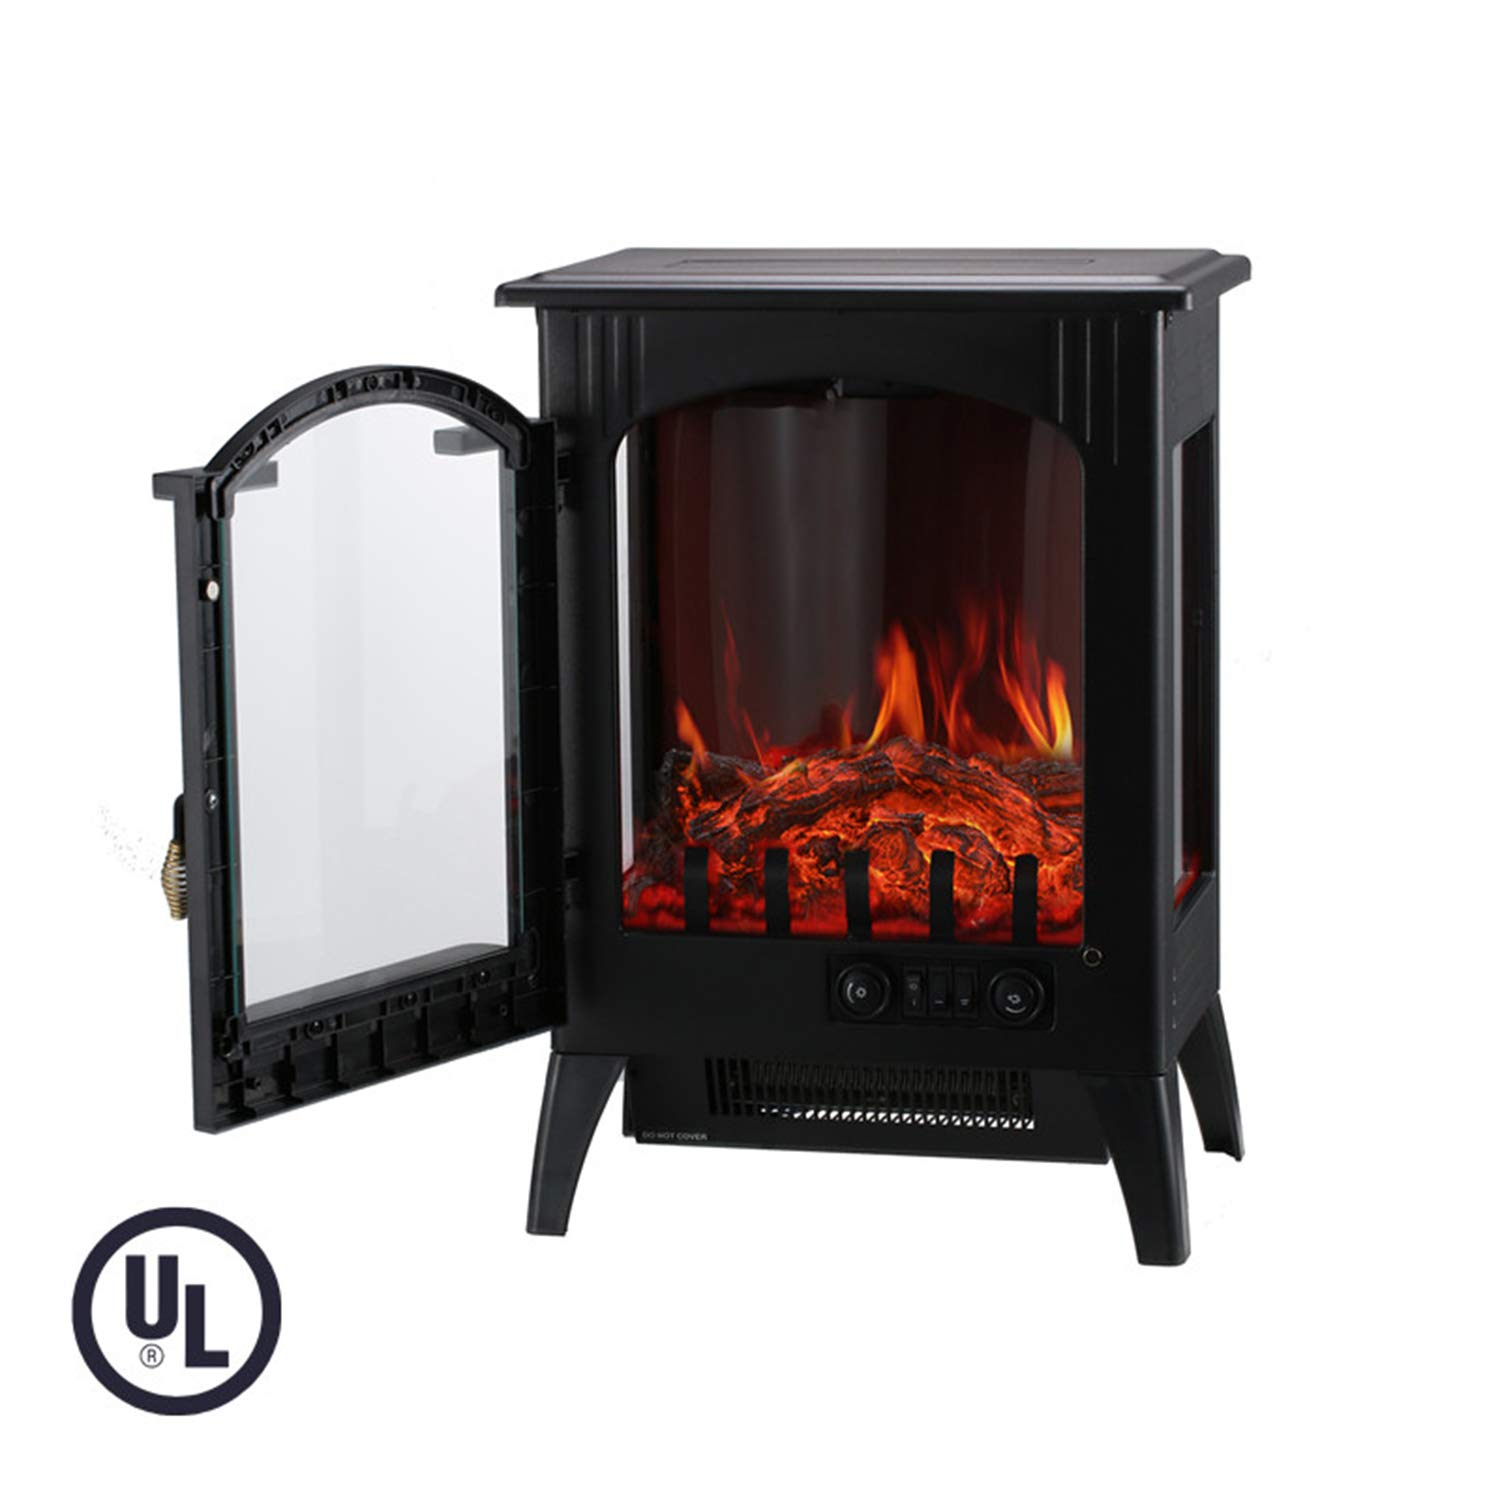 KOOLWOOM Portable Electric Fireplace Stove Heater with Thermostat for Office and Home 3D Flame & Quiet Fan